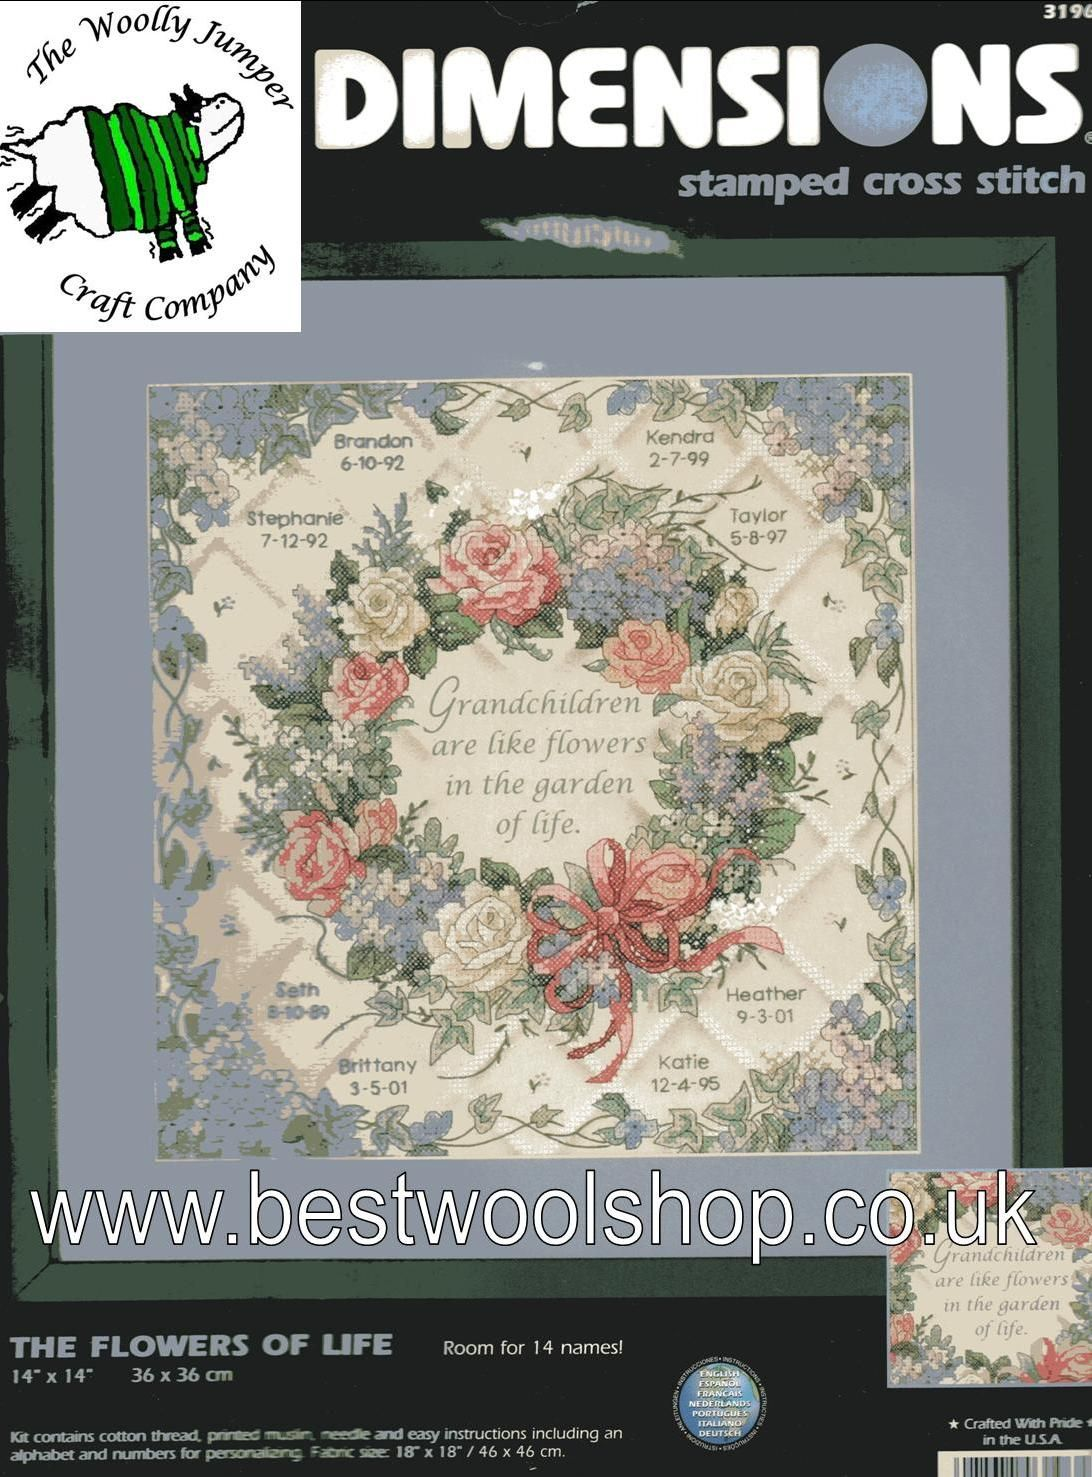 DIMENSIONS 3196 - STAMPED CROSS STITCH - GRANDCHILDREN ARE LIKE FLOWERS IN  THE GARDEN OF LIFE - 36CM X 36CM - 14